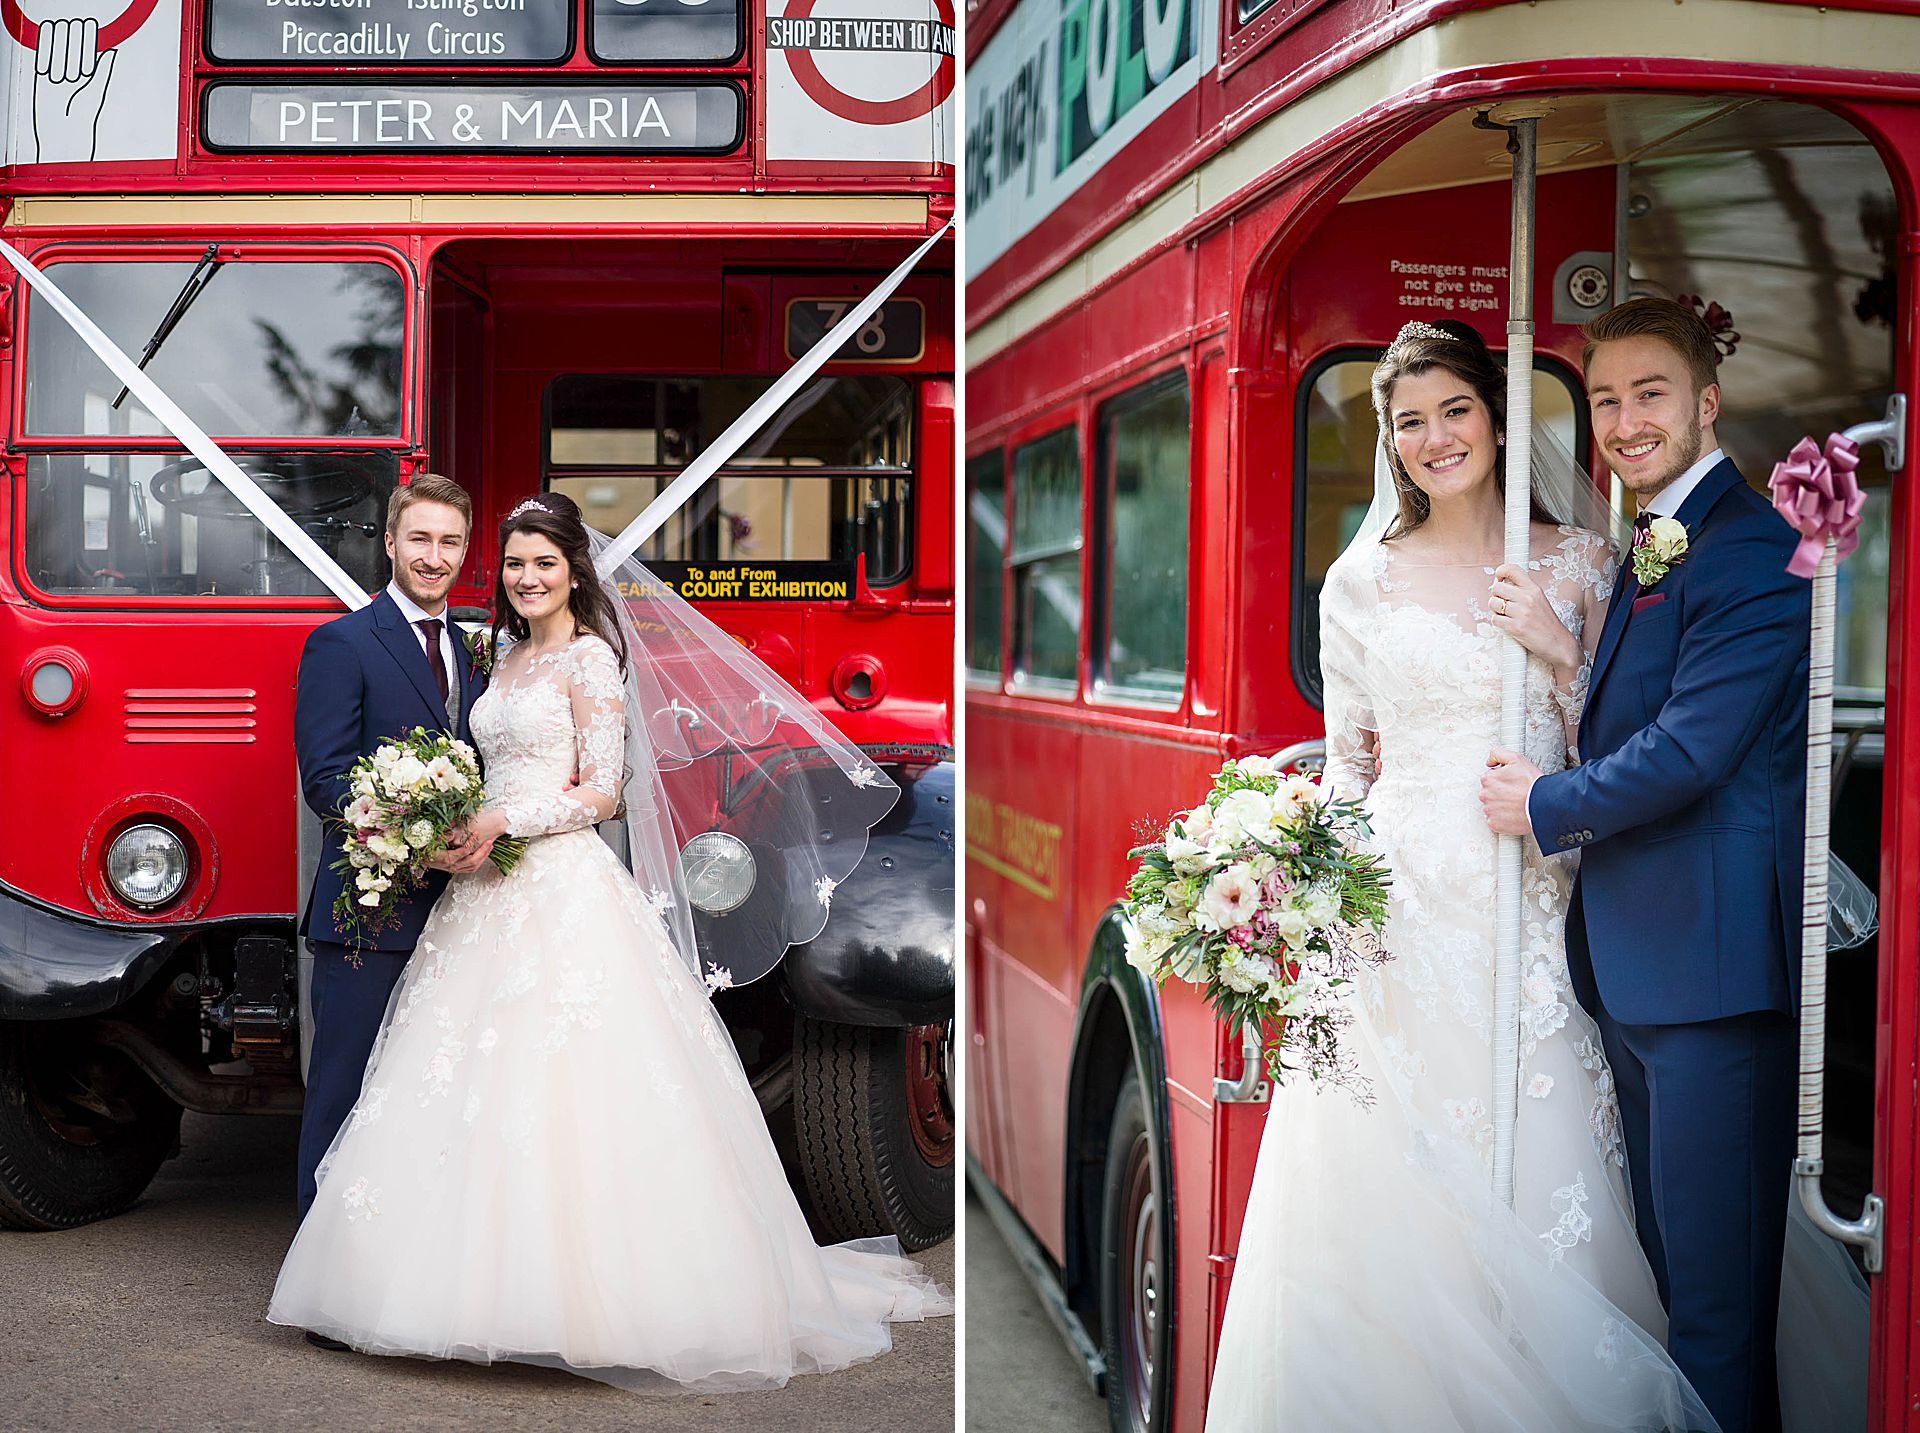 the wedding bus